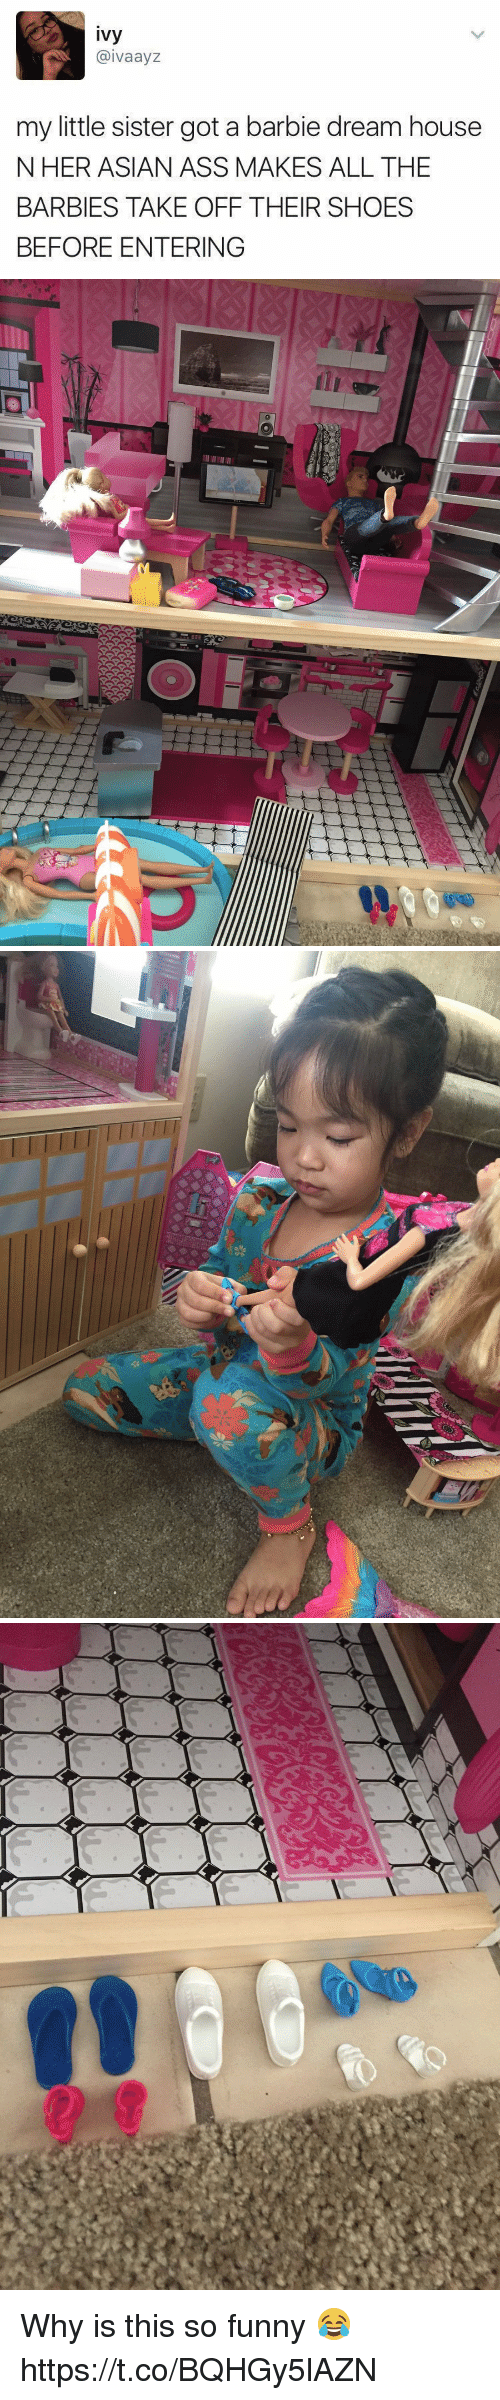 Asian, Ass, and Barbie: ivy  @ivaayz  my little sister got a barbie dream house  NHER ASIAN ASS MAKES ALL THE  BARBIES TAKE OFF THEIR SHOES  BEFORE ENTERING Why is this so funny 😂 https://t.co/BQHGy5lAZN